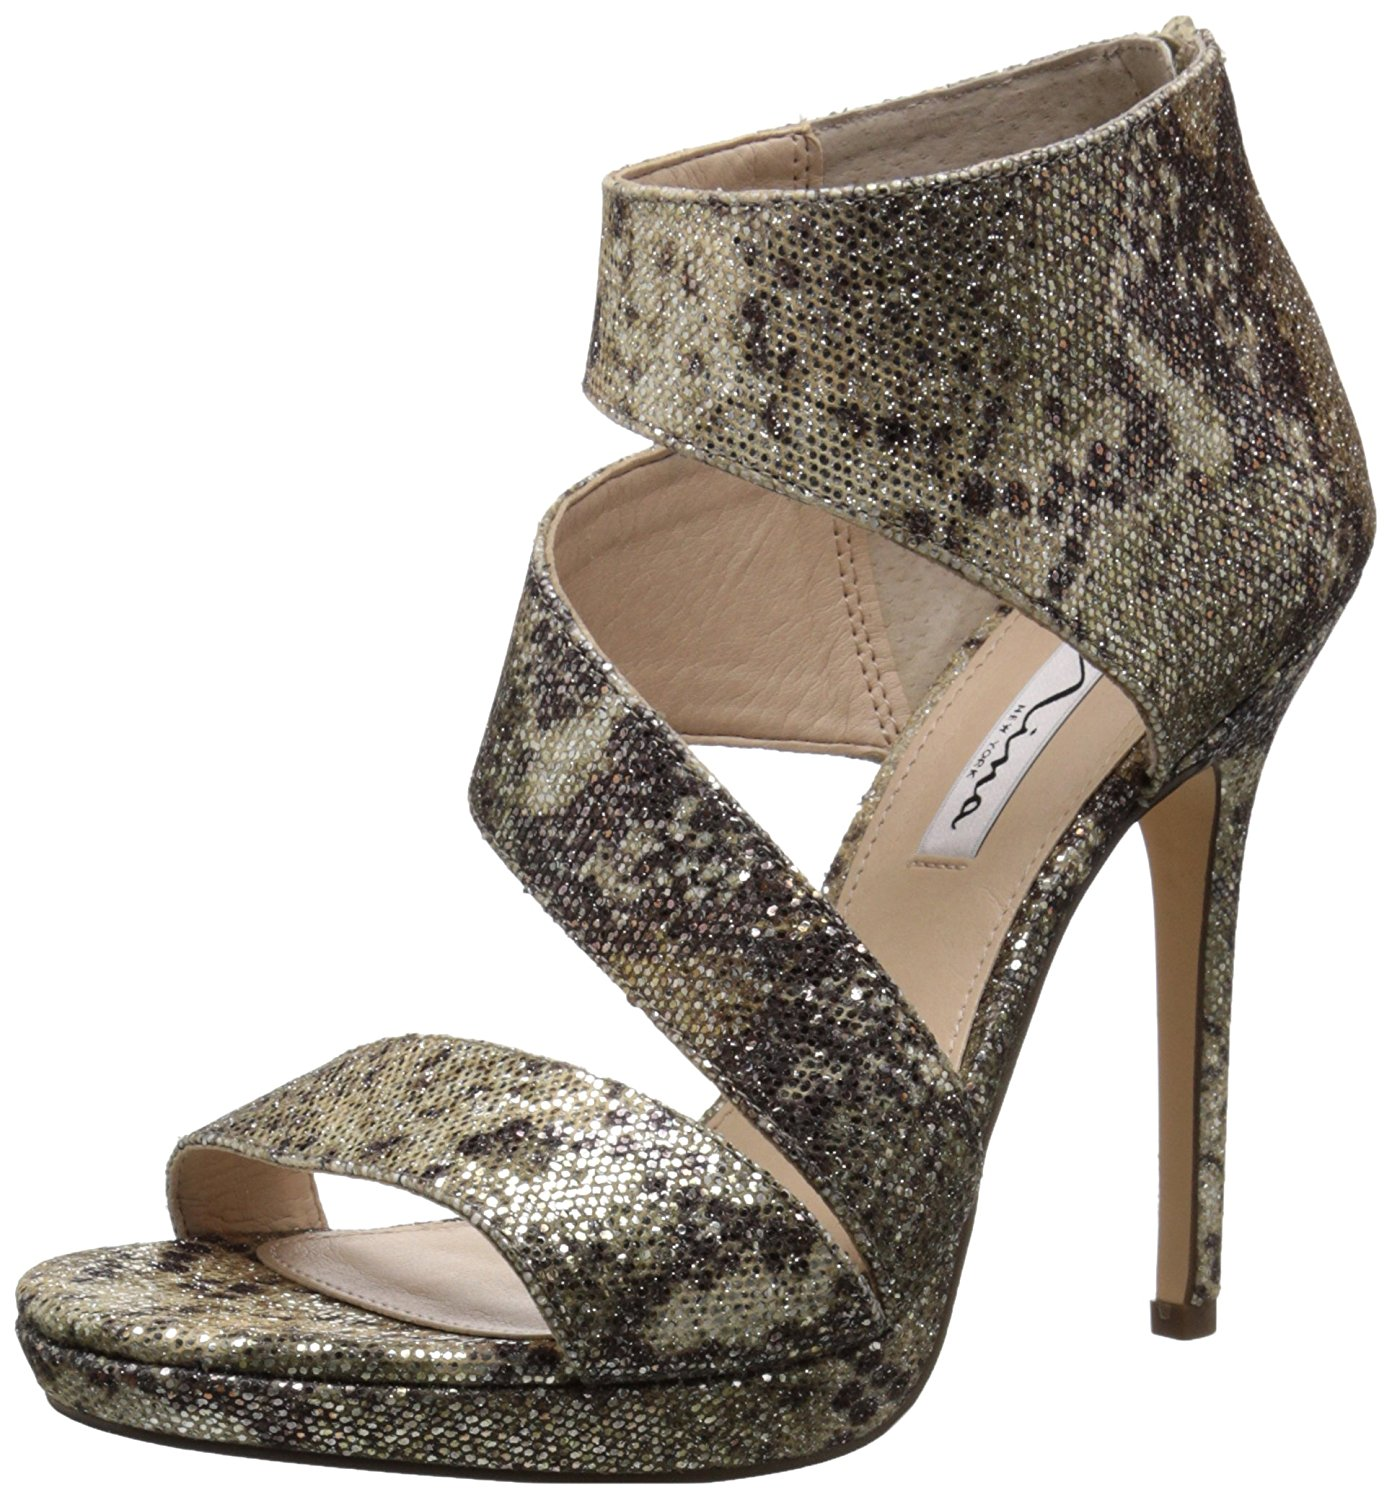 Nina Womens Faust Open Toe Ankle Wrap Platform Pumps Natural Syra Size 5.5